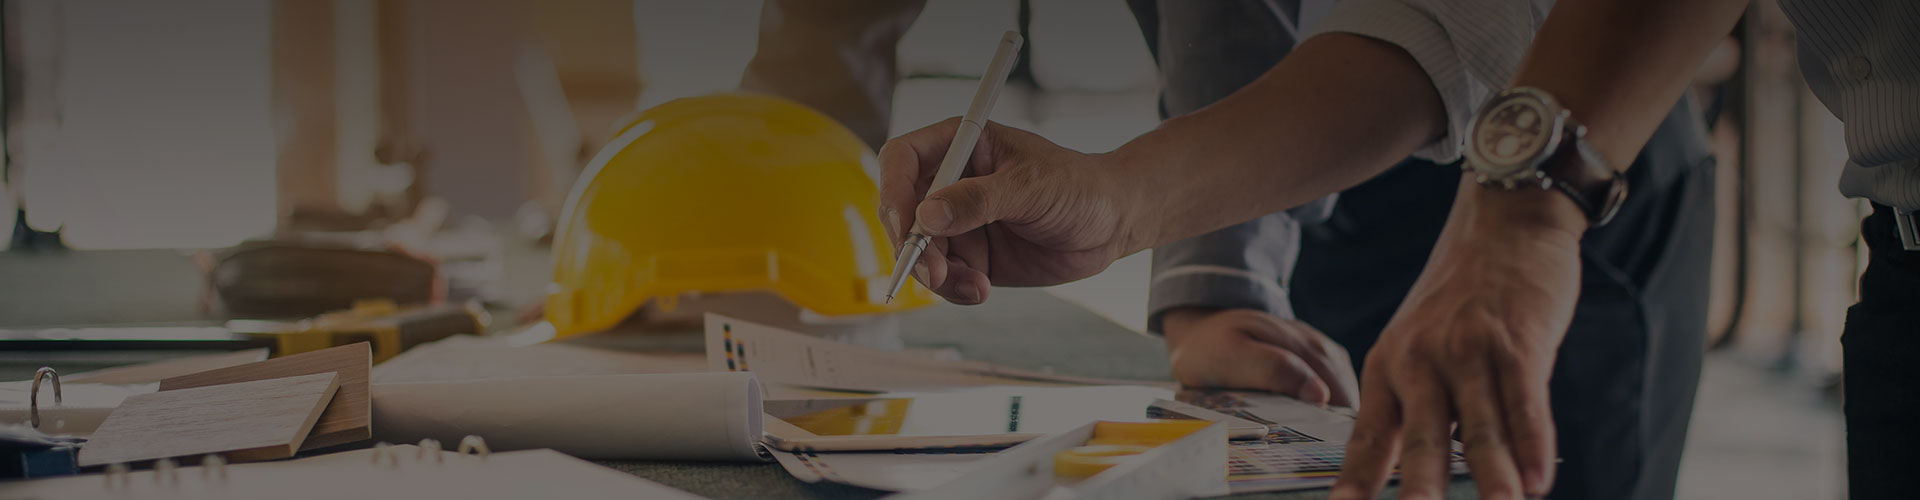 Search for Your Next Job within the Construction Industry